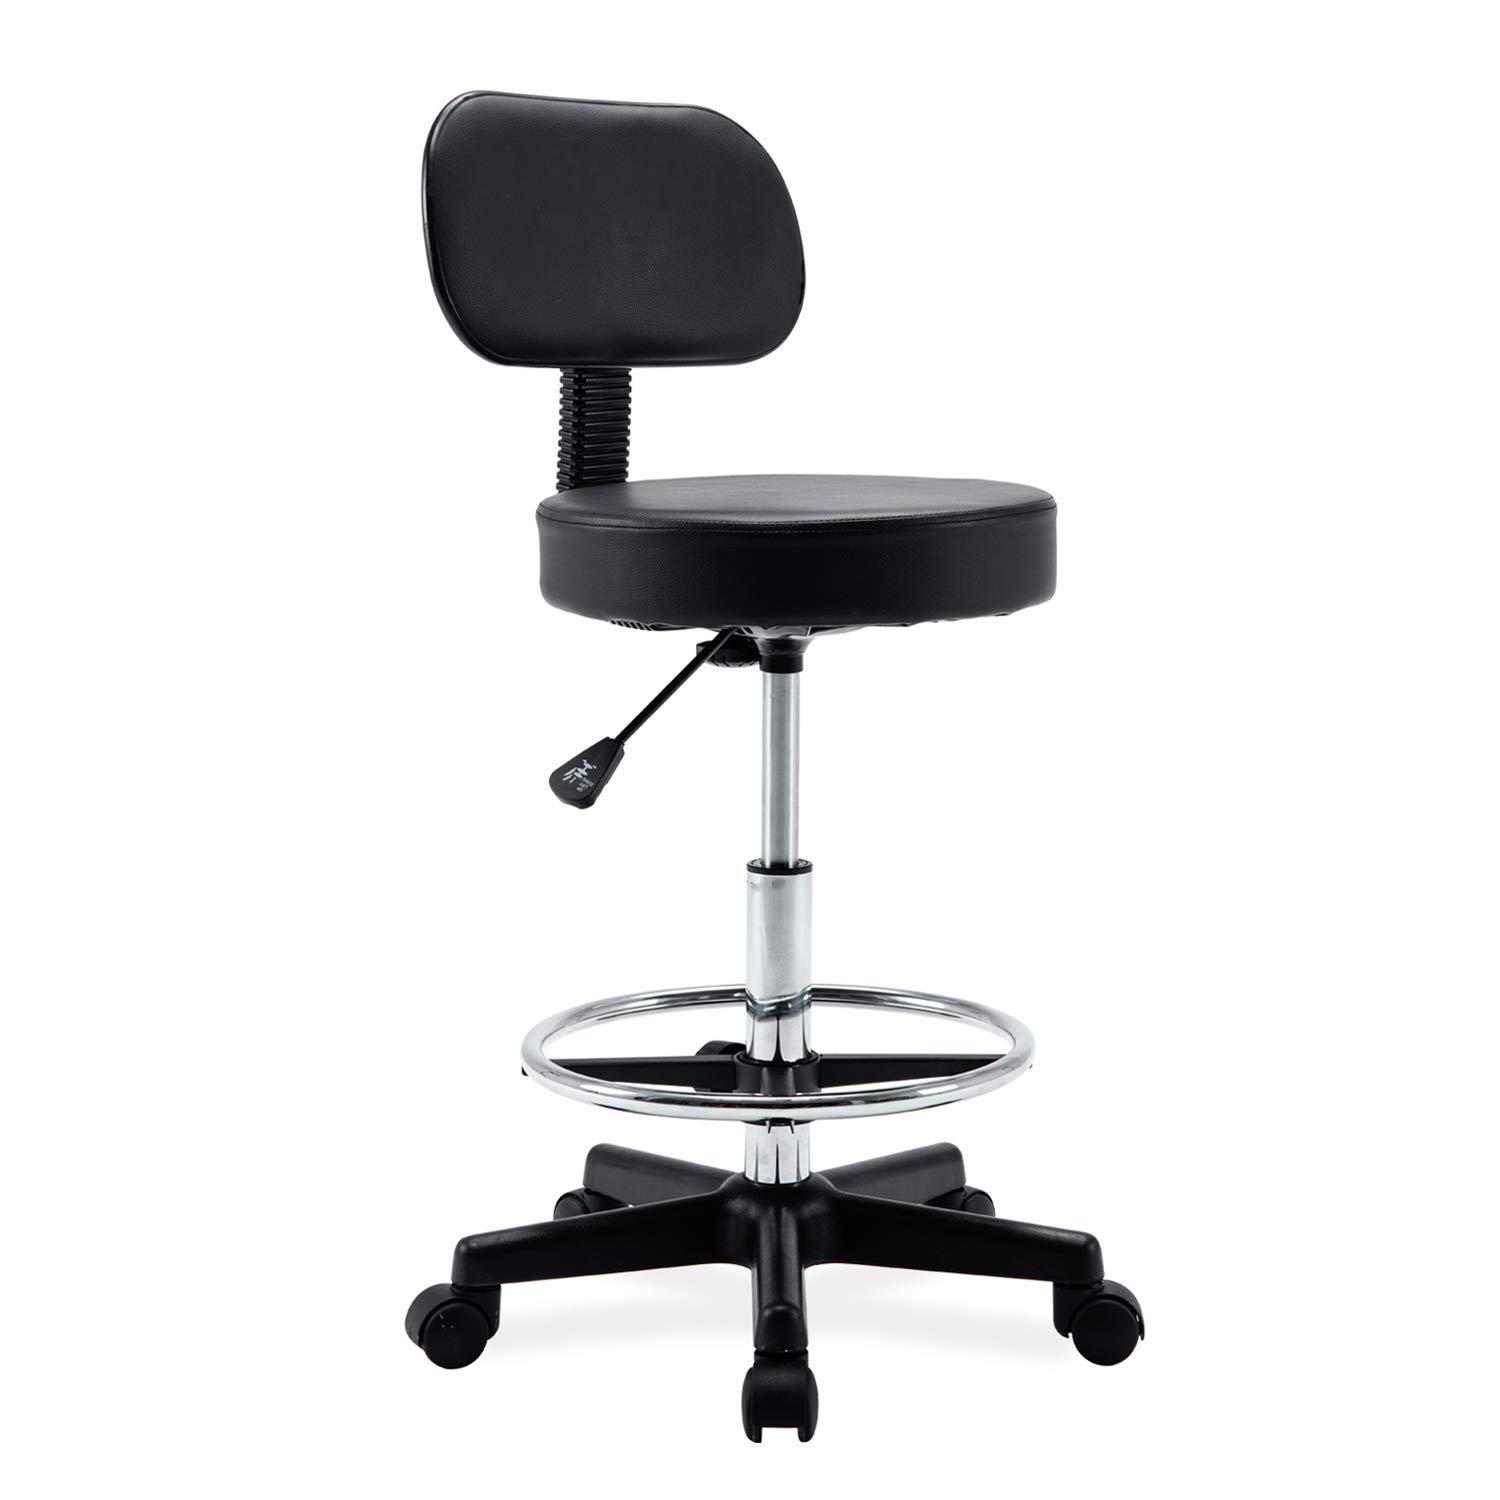 Ergonomic Drafting Stool- Adjustable Rolling Office Chair Work Stool with Back and Wheels for Home Office Workplace Studio Guitar Practice, seat Height 19.7-27.5'' ...